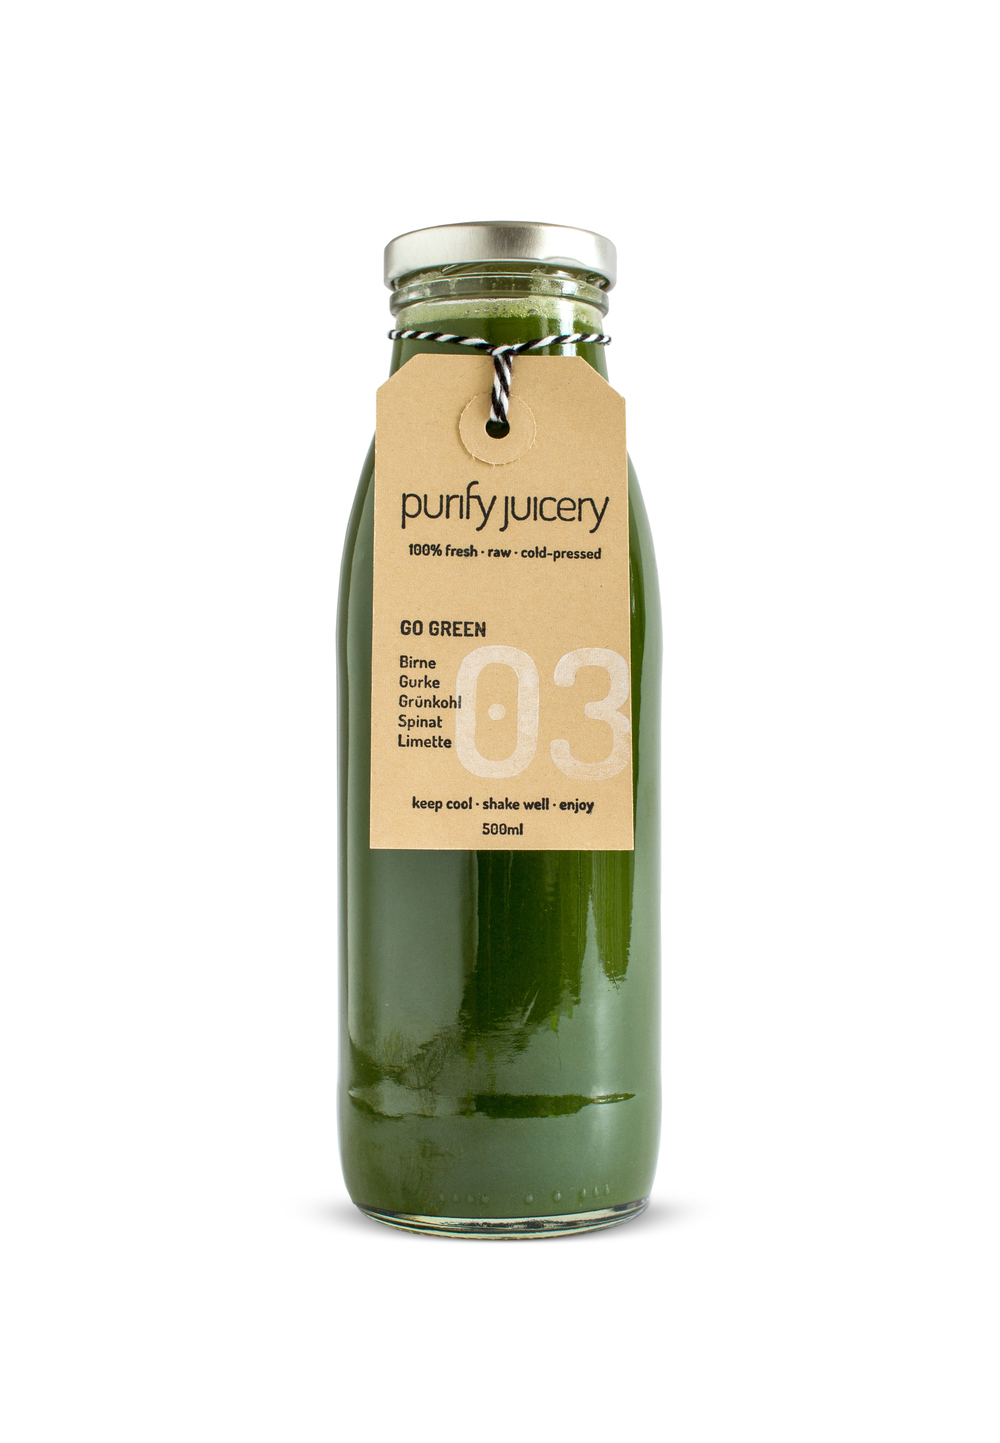 Purify_Juicery_bottles_03.jpg